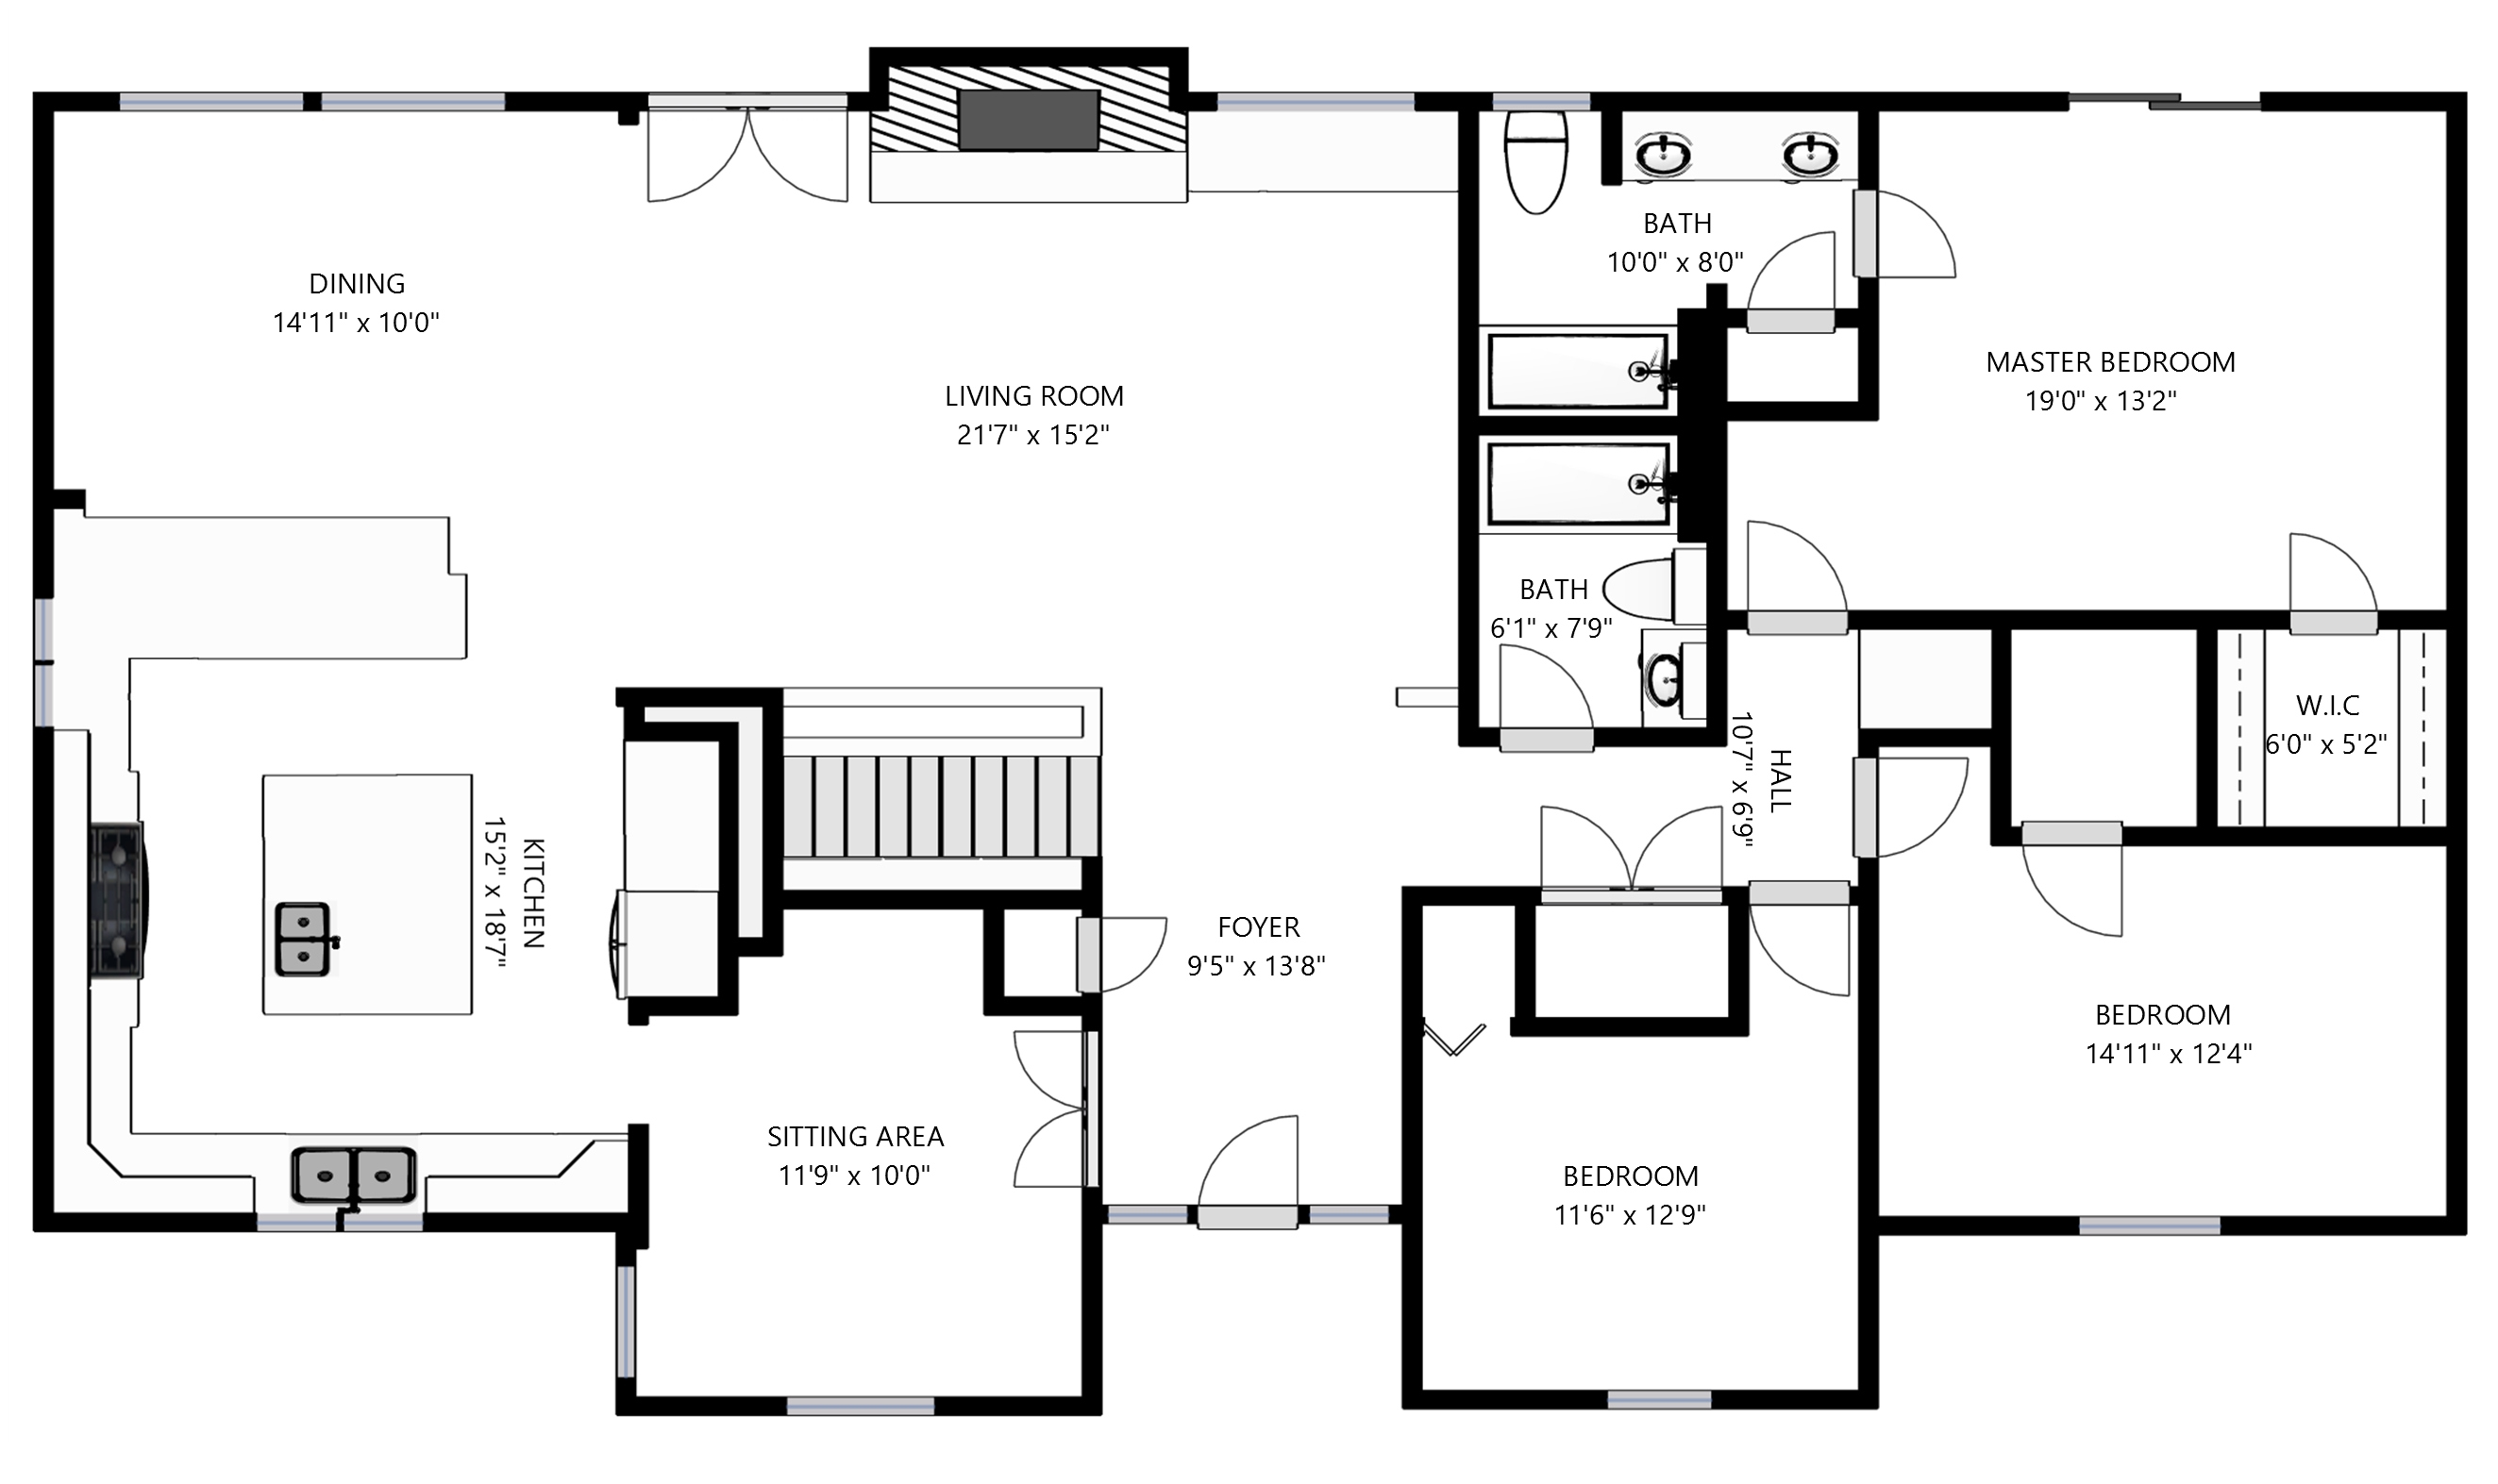 Interactive floor plan lake norman bluebird cove for Virtual floor plans for houses